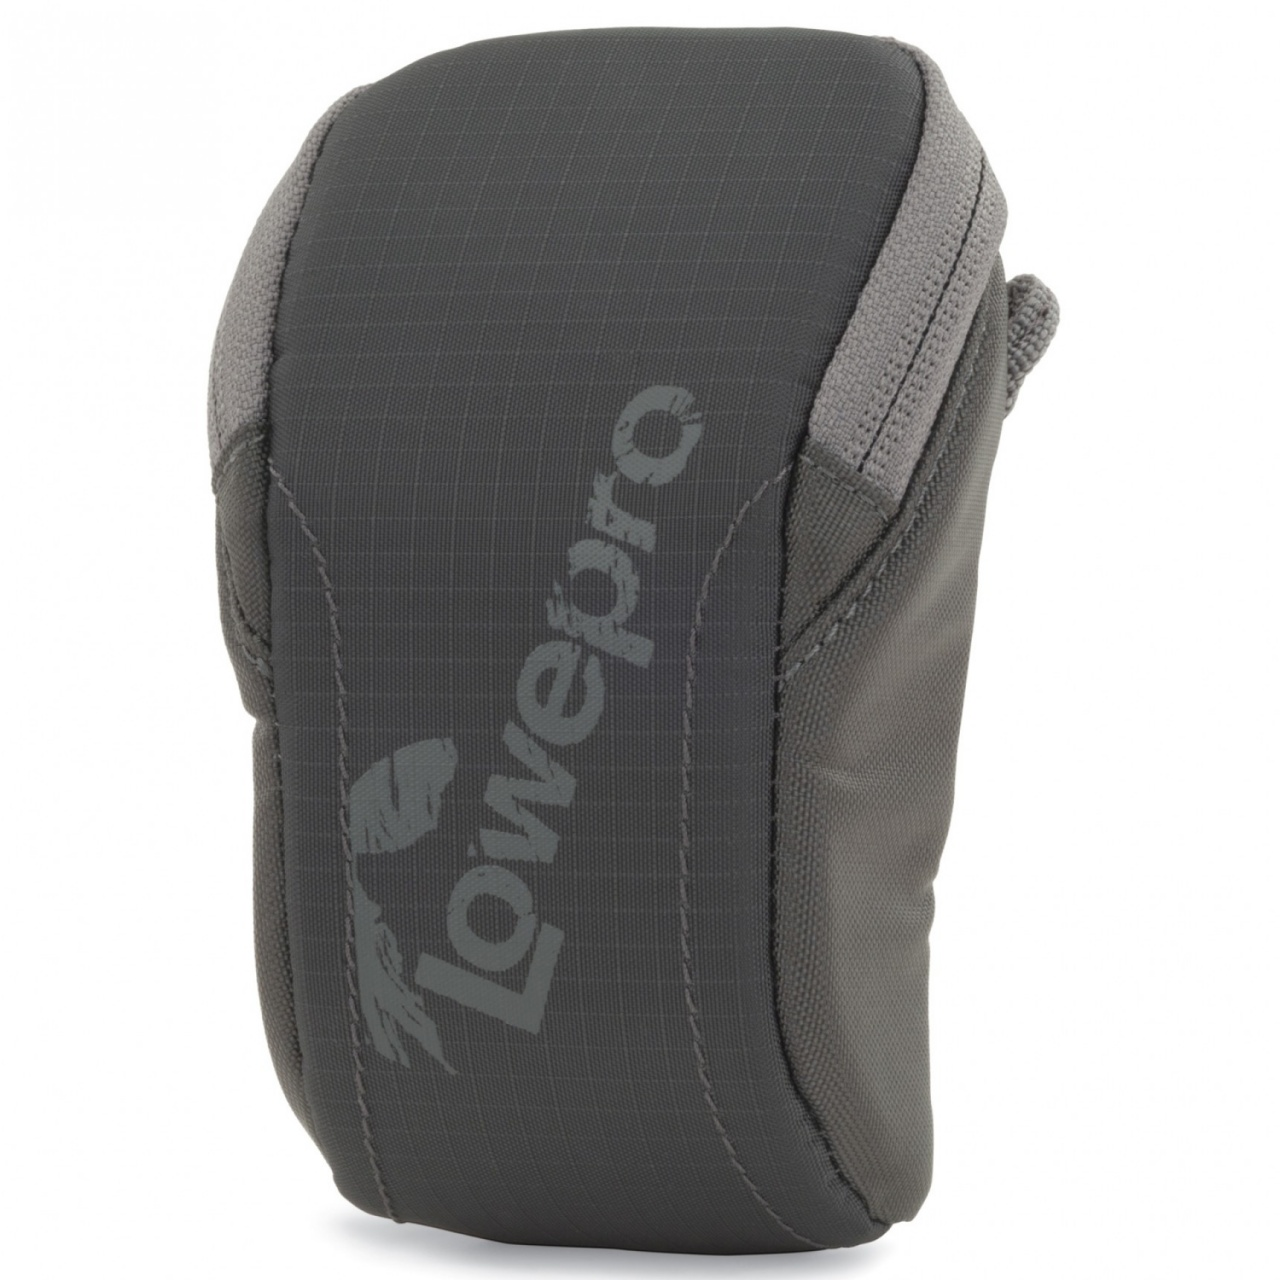 Lowepro Dashpoint 10 - šedý